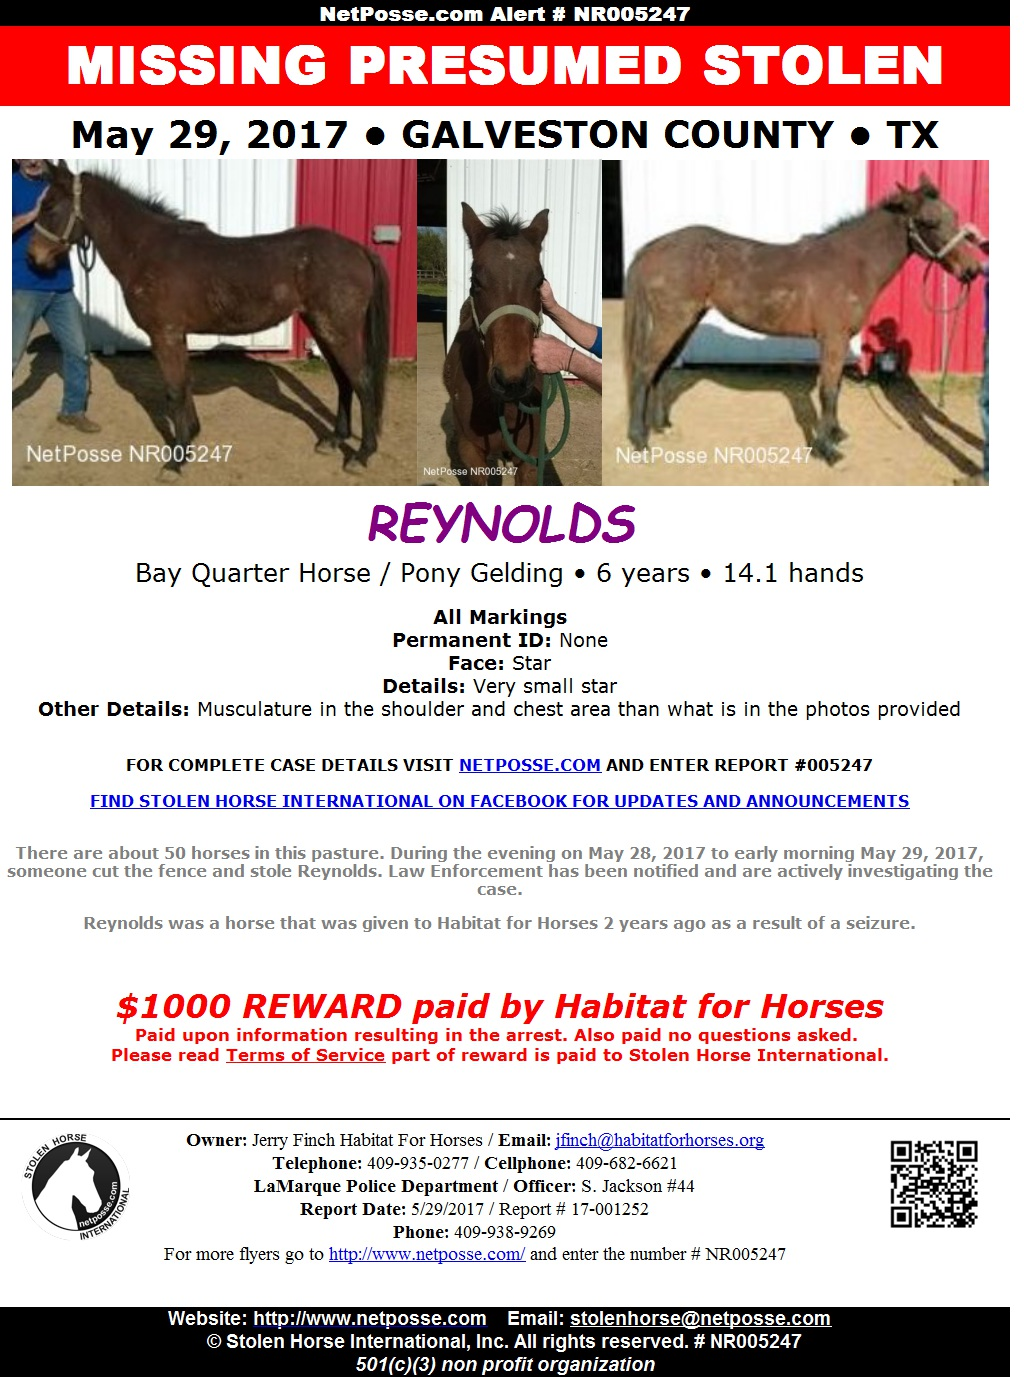 Horse Stolen from Texas Equine Rescue